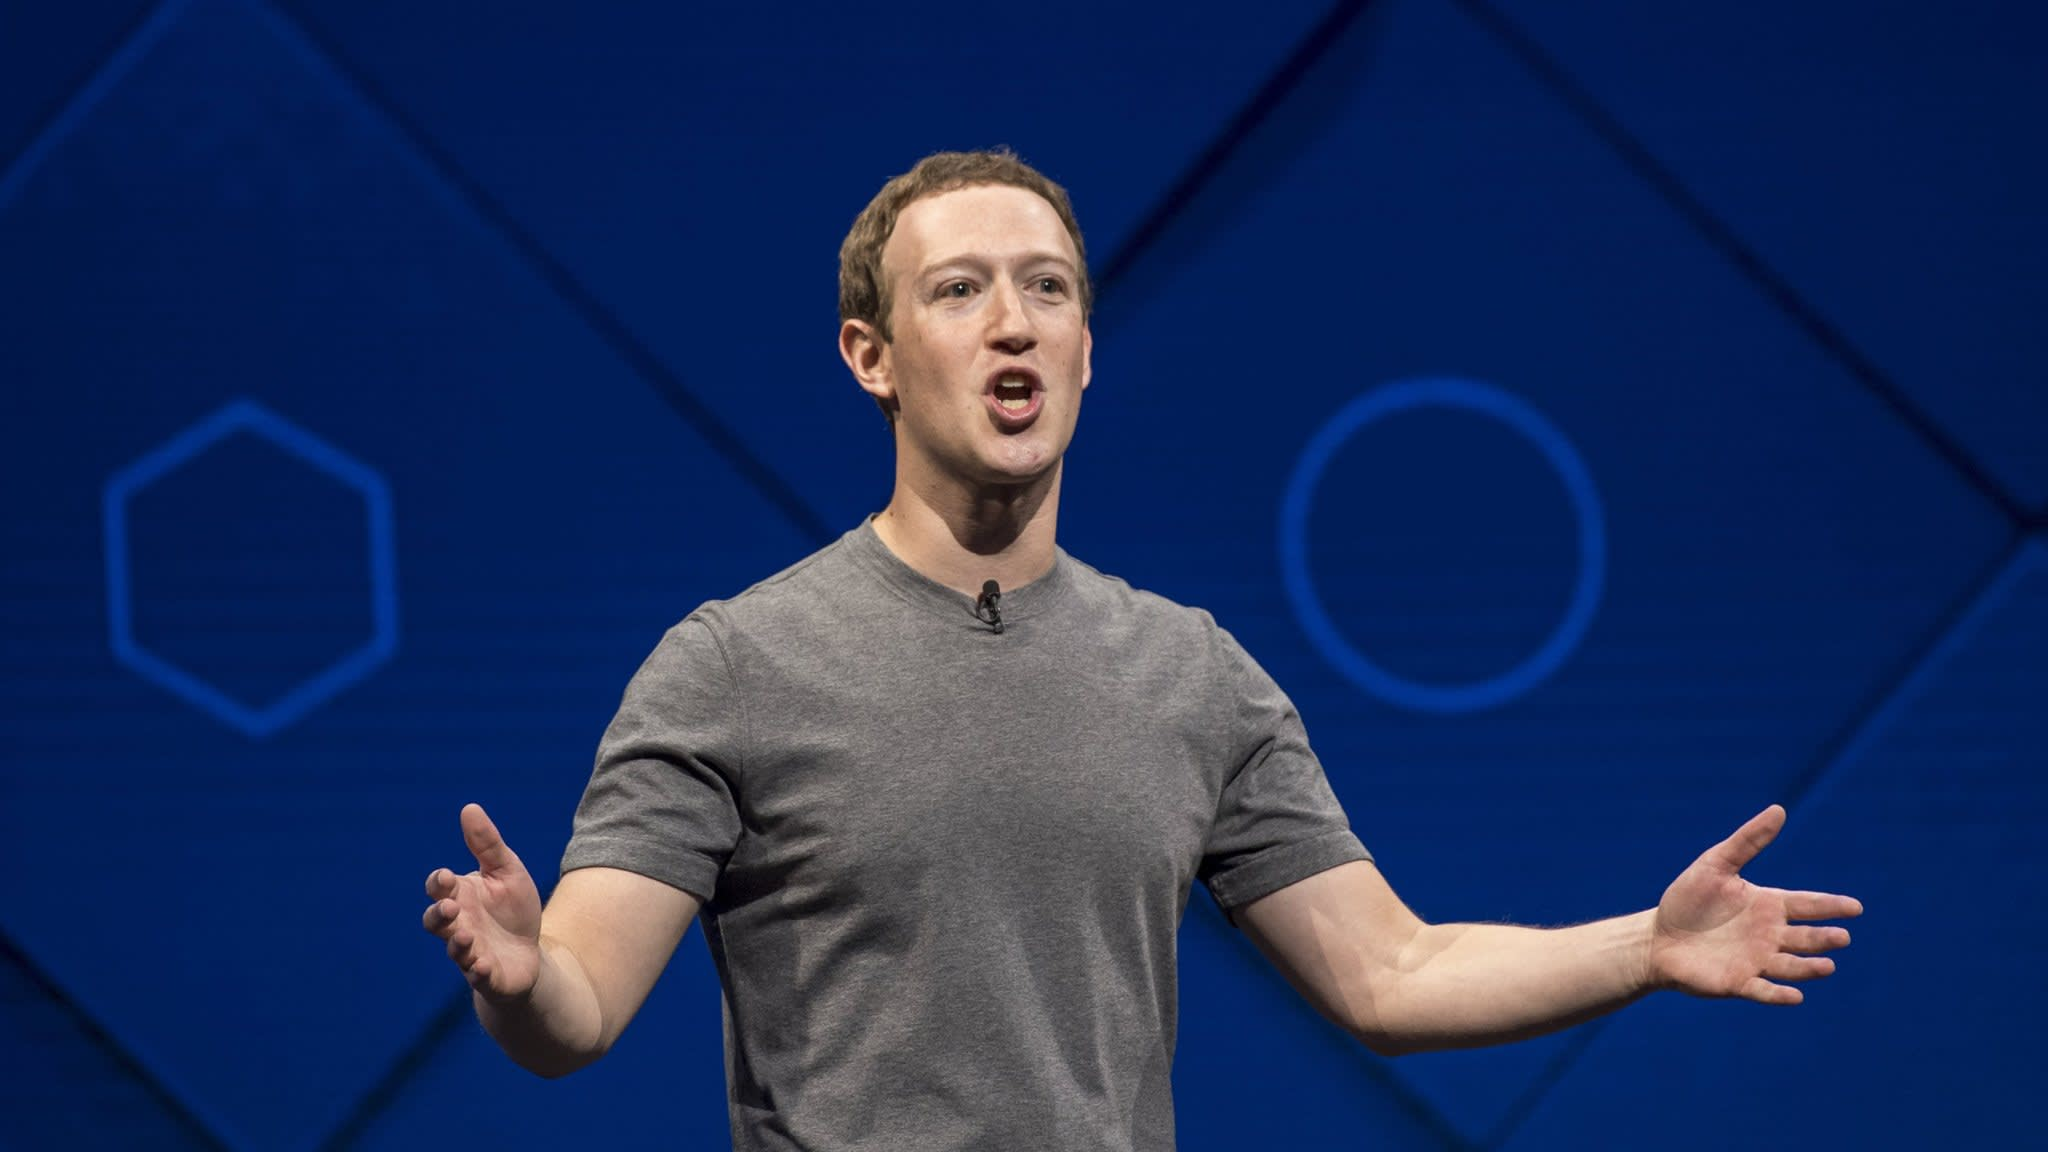 Zuckerberg should quit as chairman, investor says